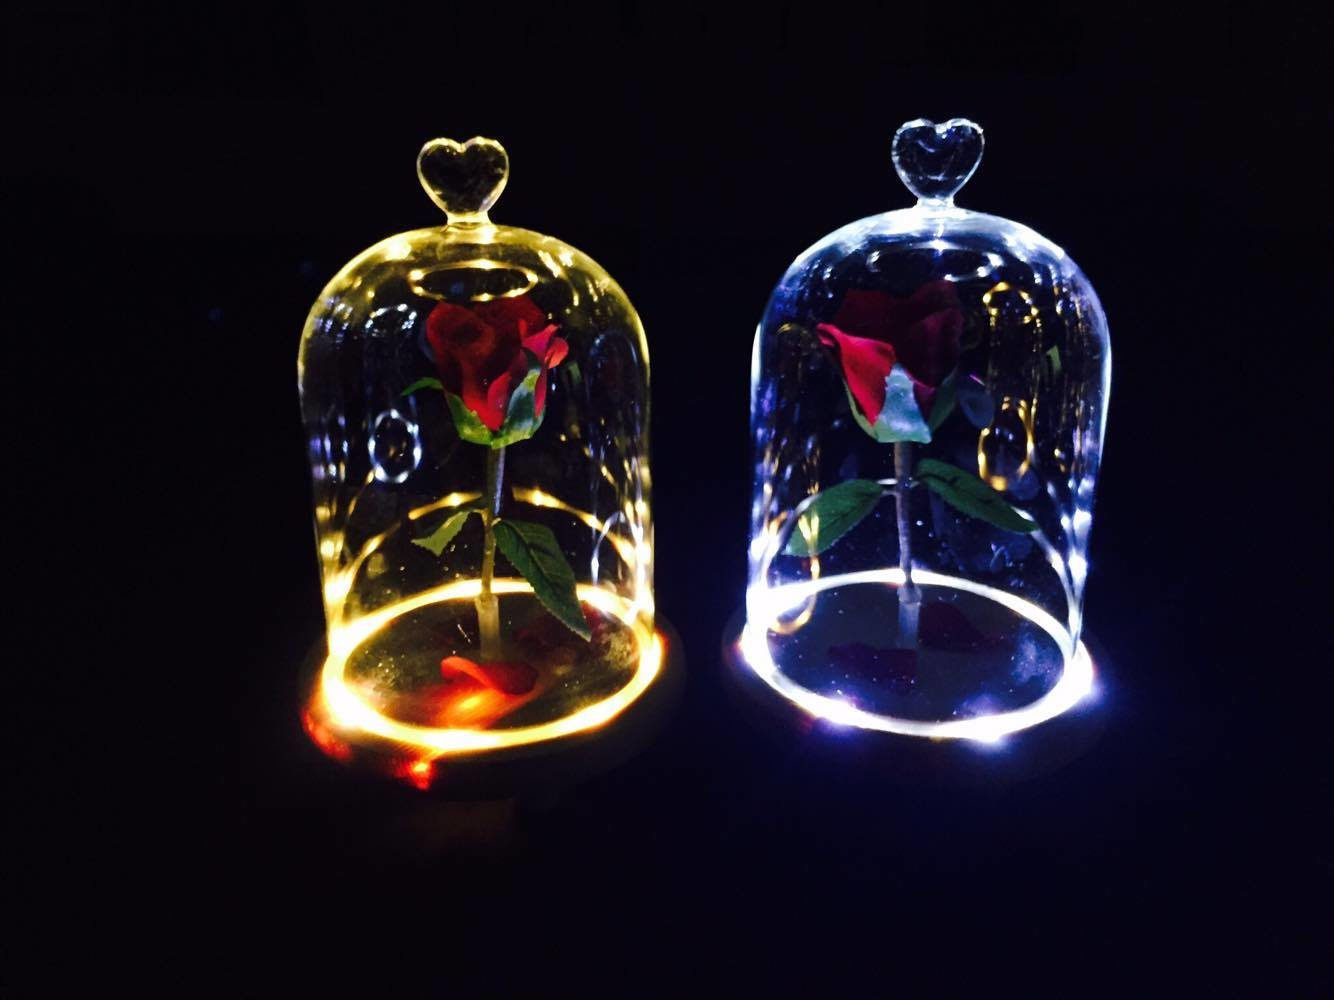 Glass Night Lights The Beauty And The Beast Enchanted Flower Rose Belle Glass